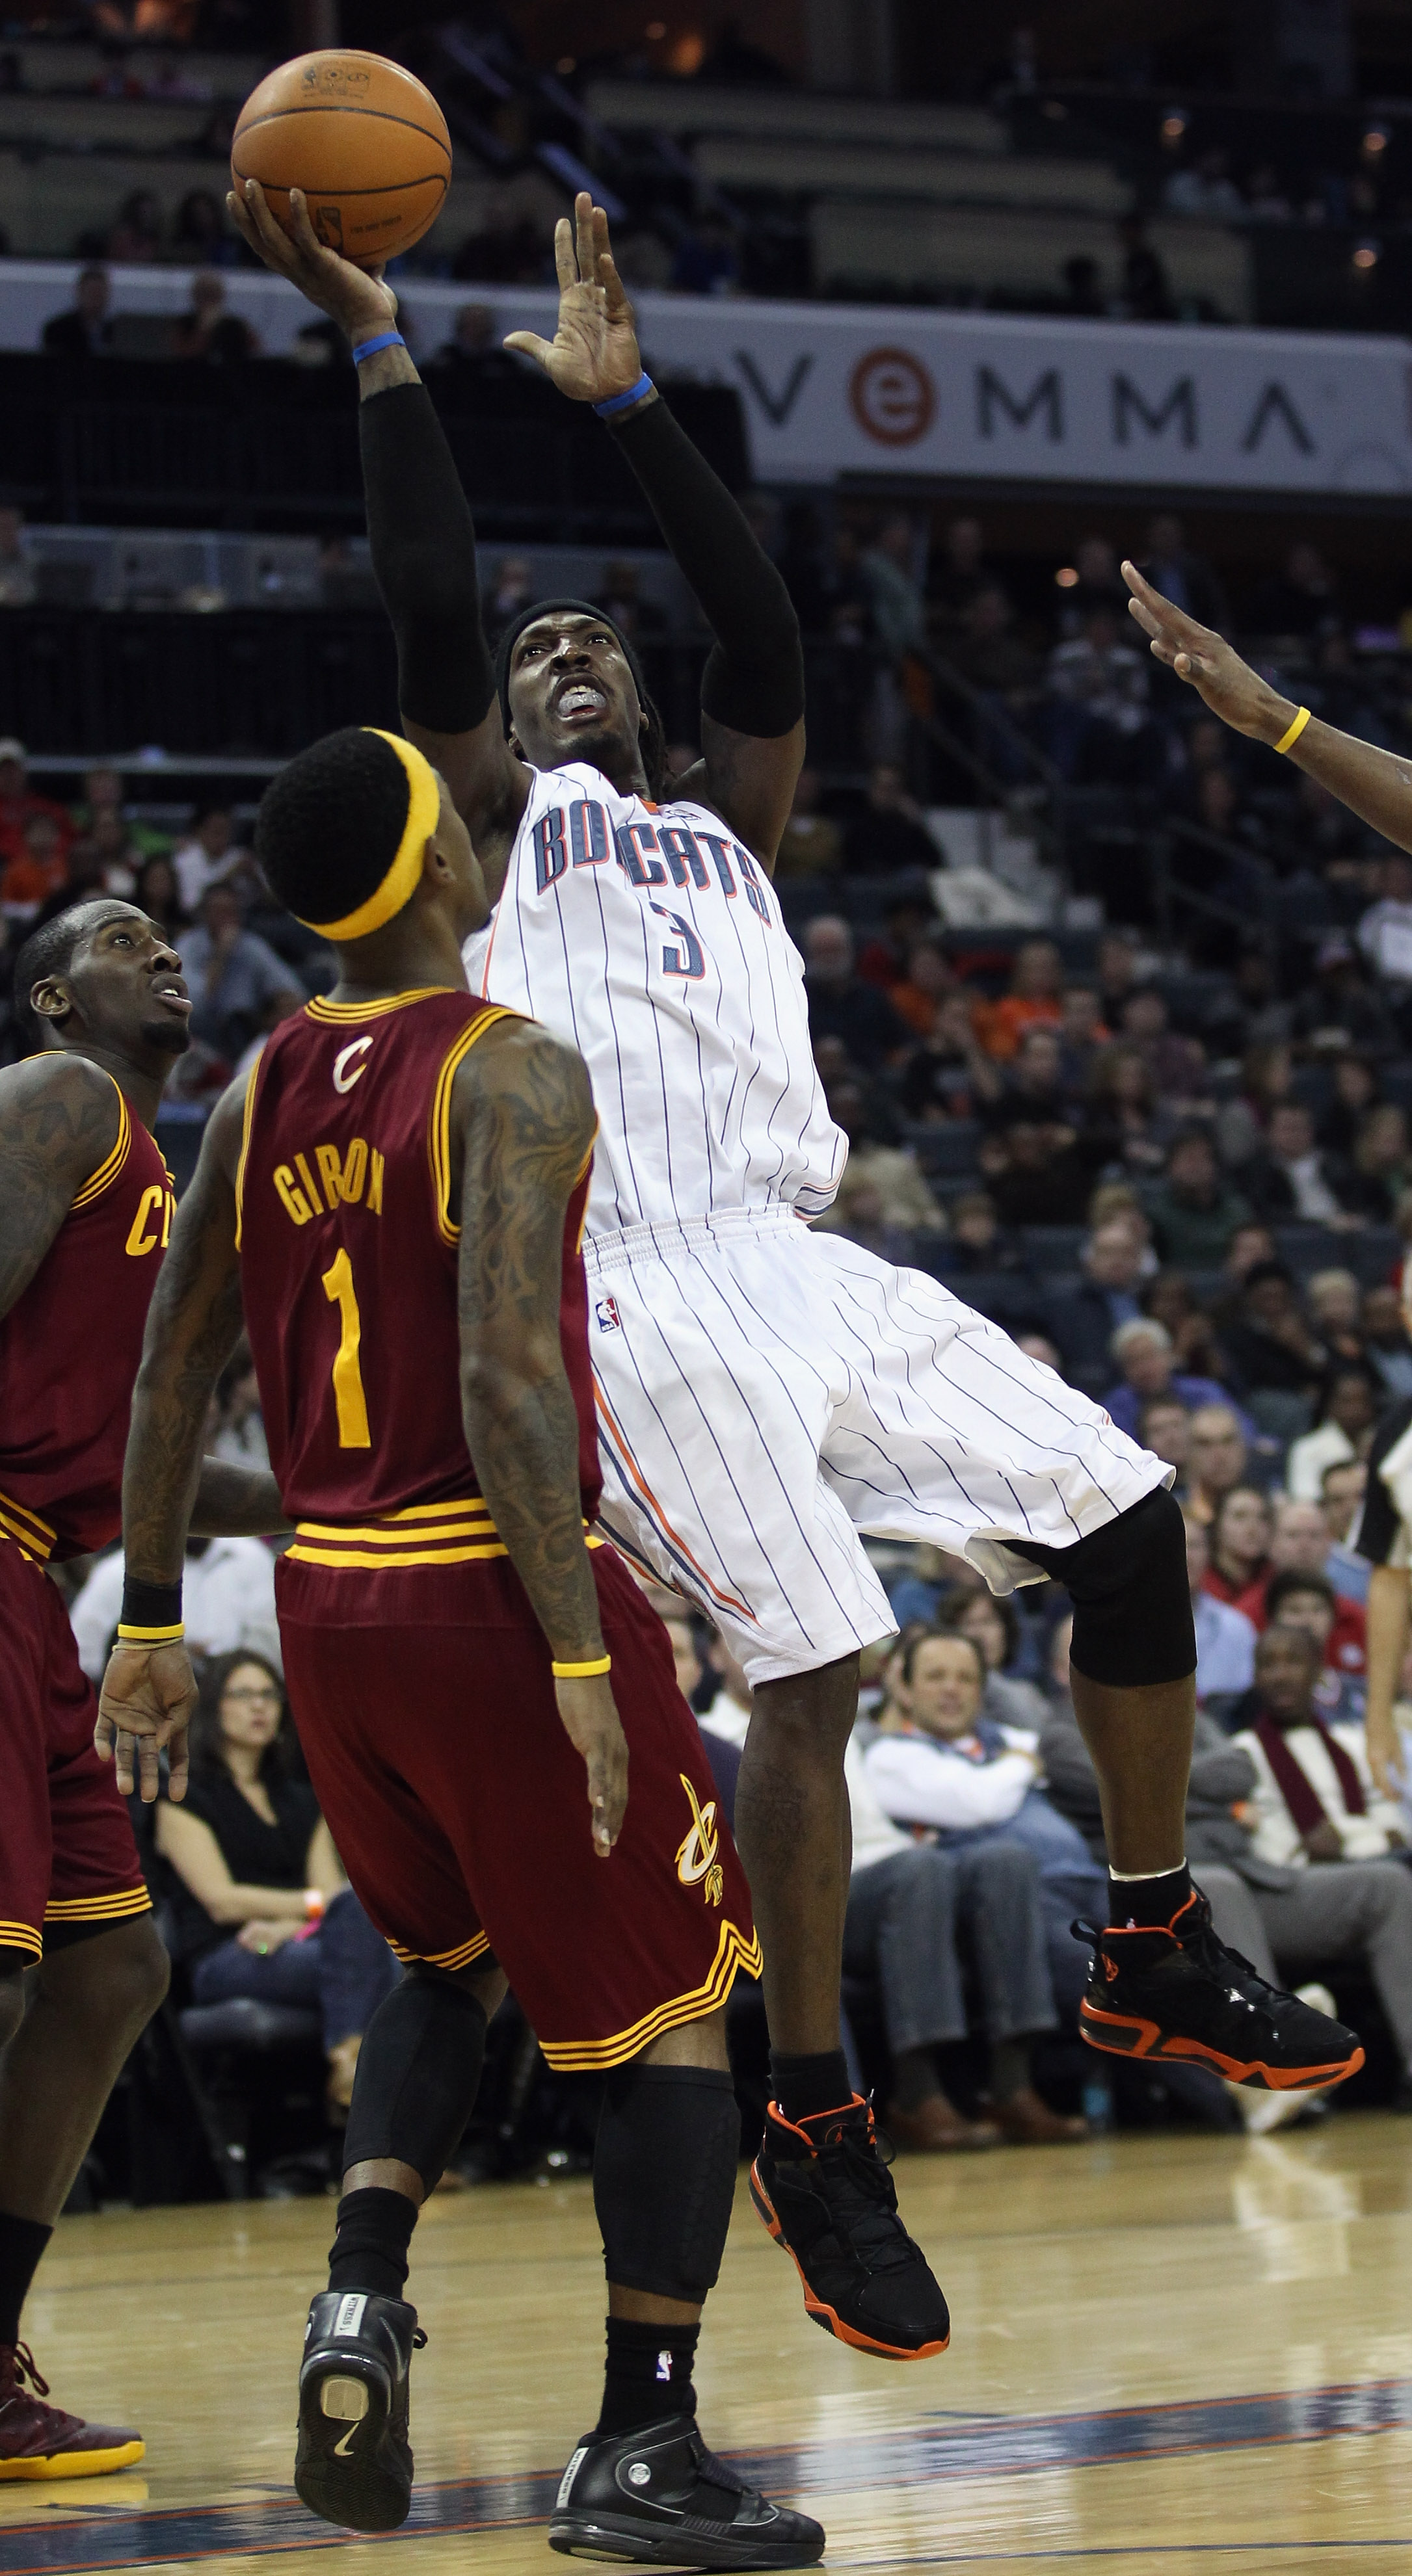 CHARLOTTE, NC - DECEMBER 29:  Daniel Gibson #1 of the Cleveland Cavaliers backs away from Gerald Wallace #3 of the Charlotte Bobcats during their game at Time Warner Cable Arena on December 29, 2010 in Charlotte, North Carolina. NOTE TO USER: User express